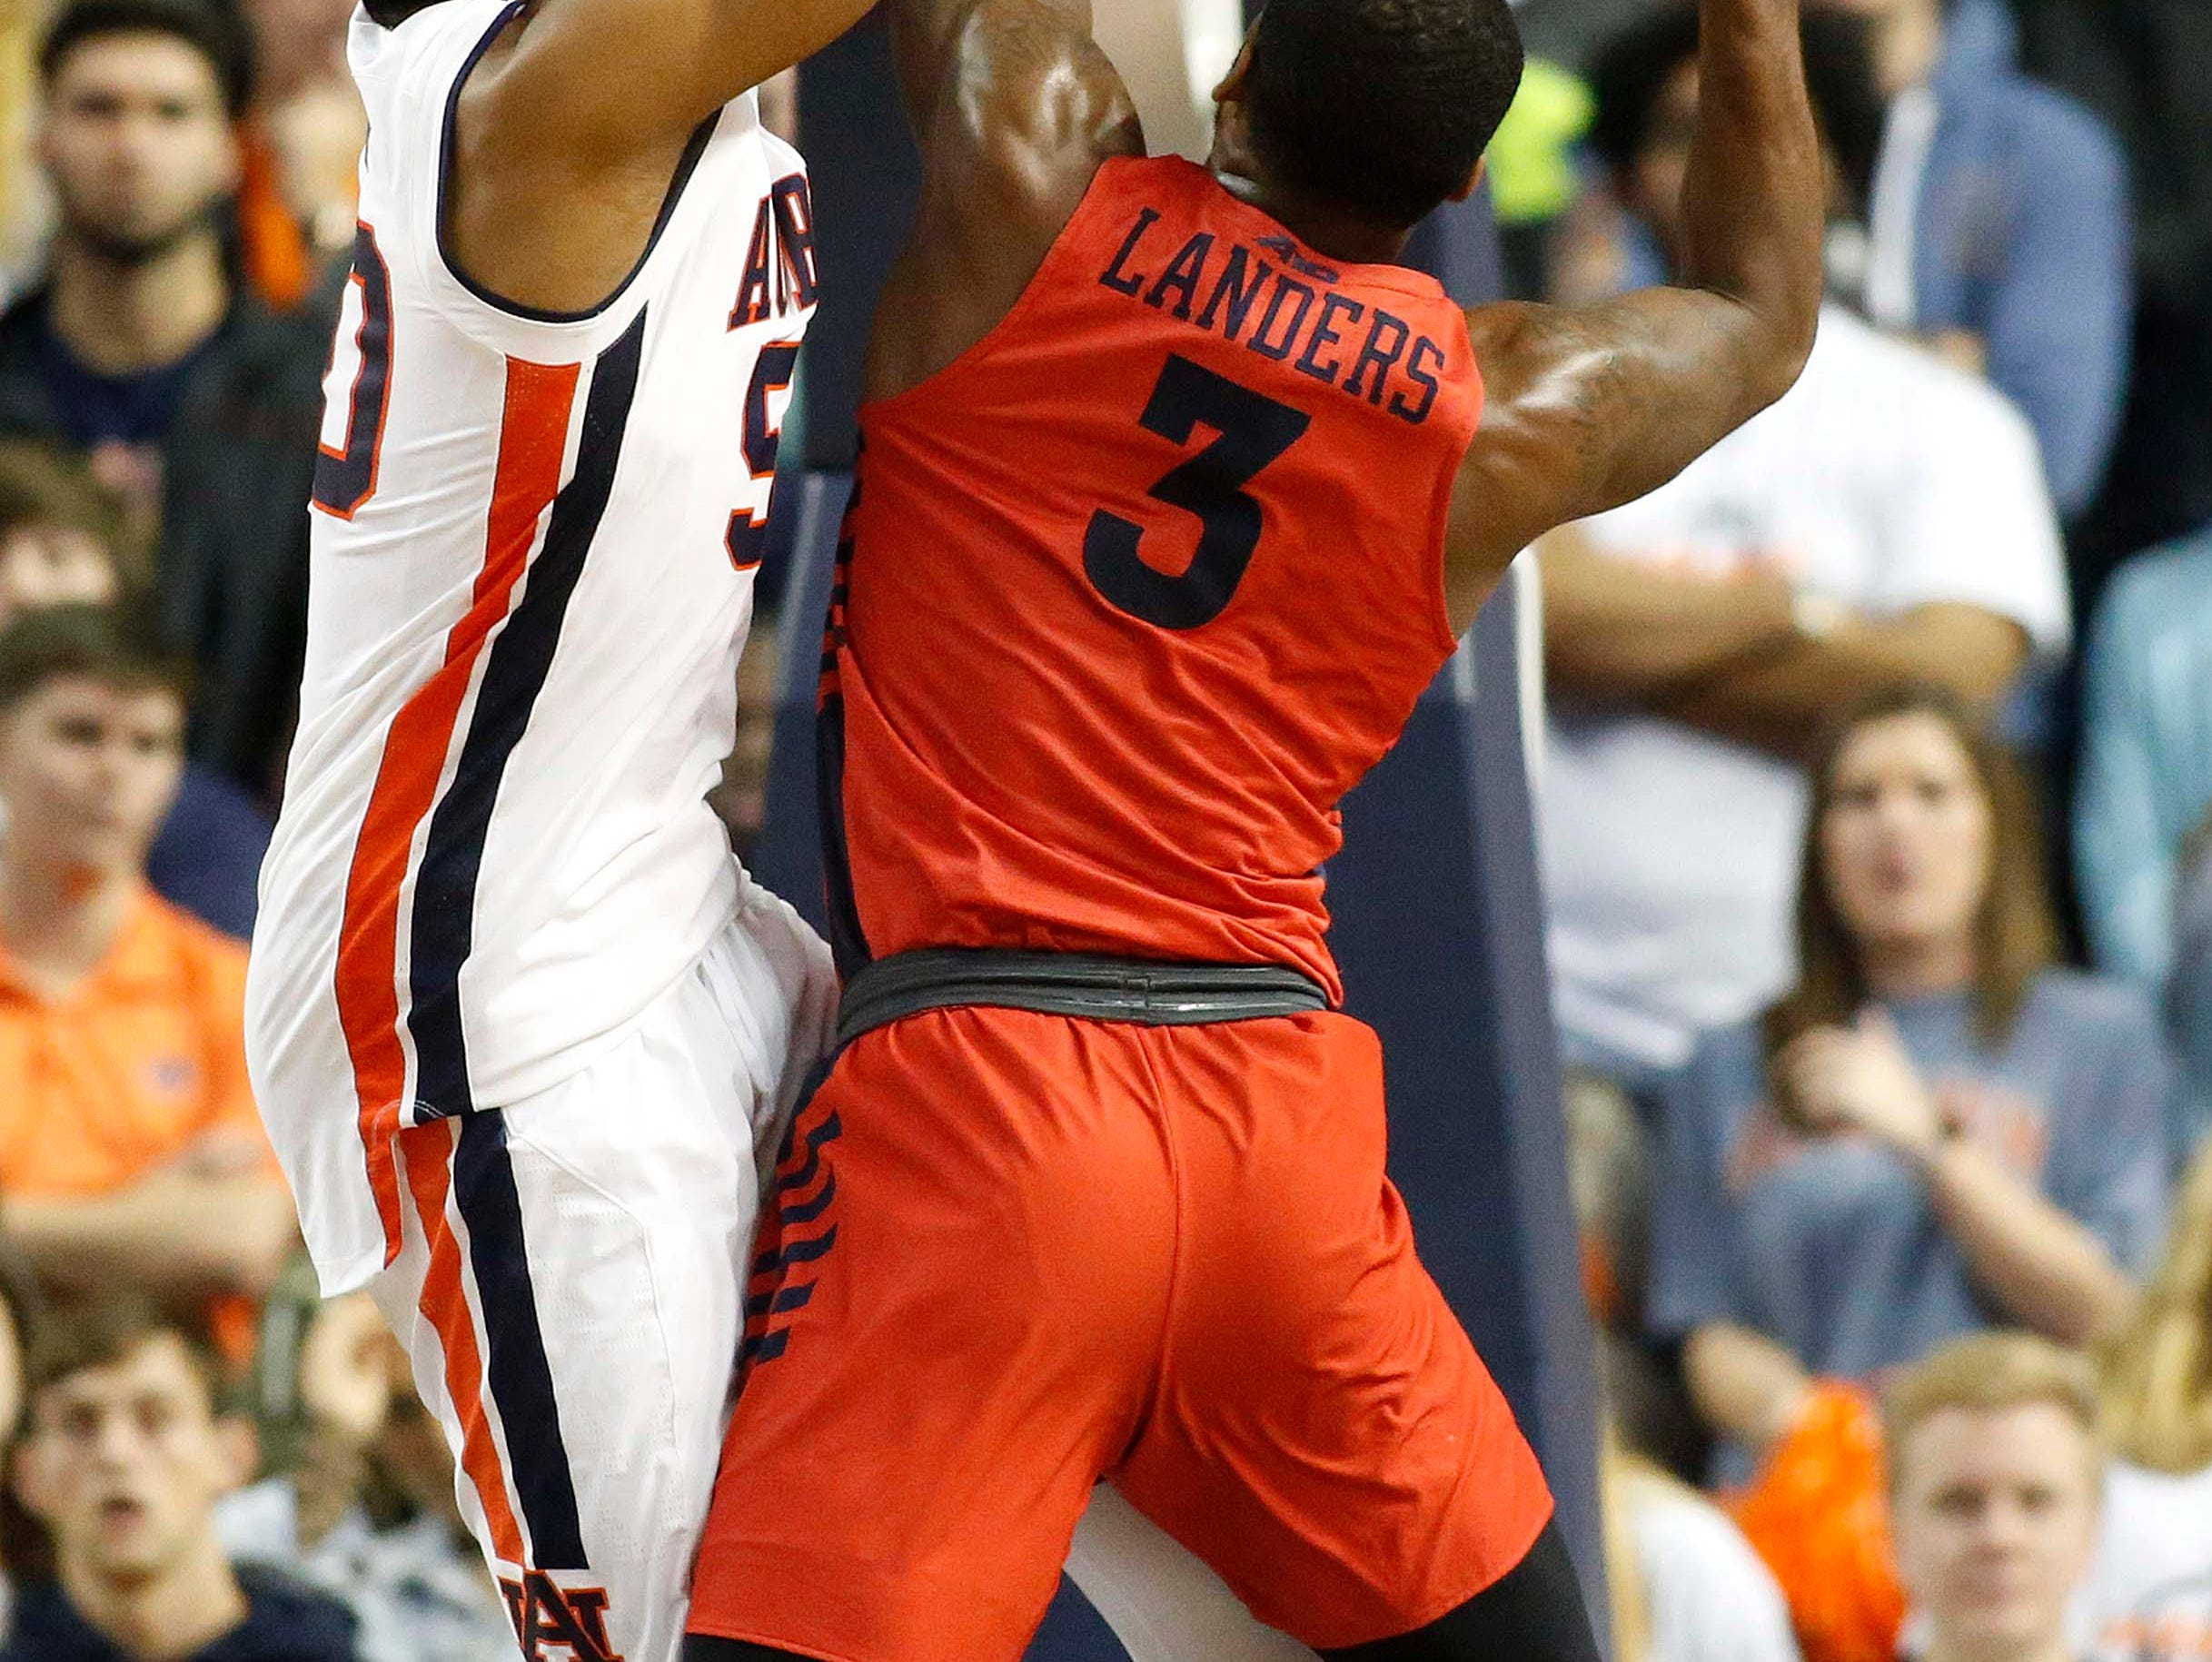 Dec 8, 2018; Auburn, AL, USA; Auburn Tigers center Austin Wiley (50) goes to block the shot from Dayton Flyers guard Trey Landers (3) during the second half at Auburn Arena. Mandatory Credit: John Reed-USA TODAY Sports